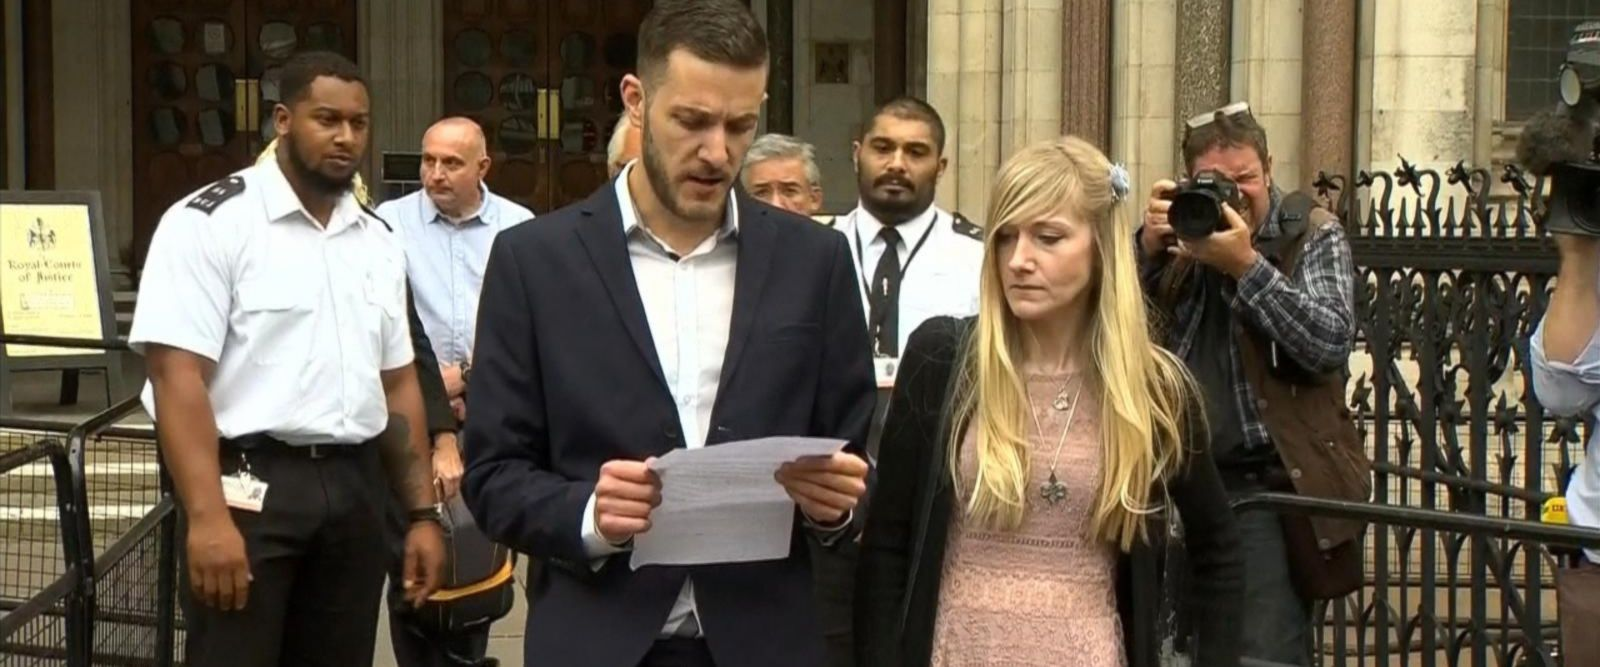 VIDEO: Charlie Gard's parents spend final moments with terminally ill son